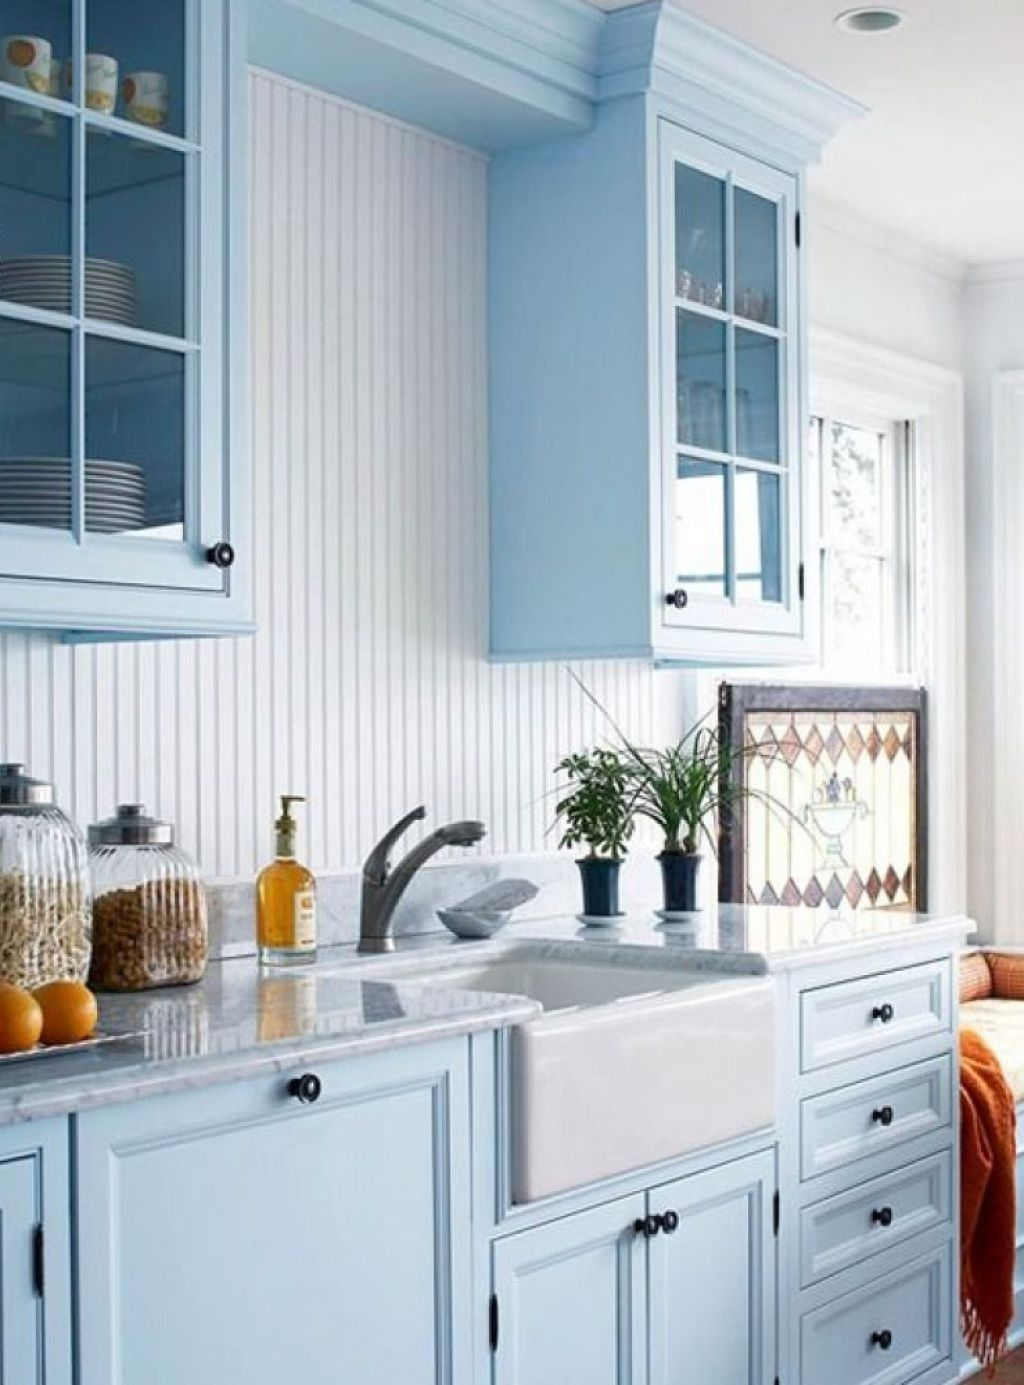 Light Blue Kitchen Cabinets Colors With White Apron Sink In The ...